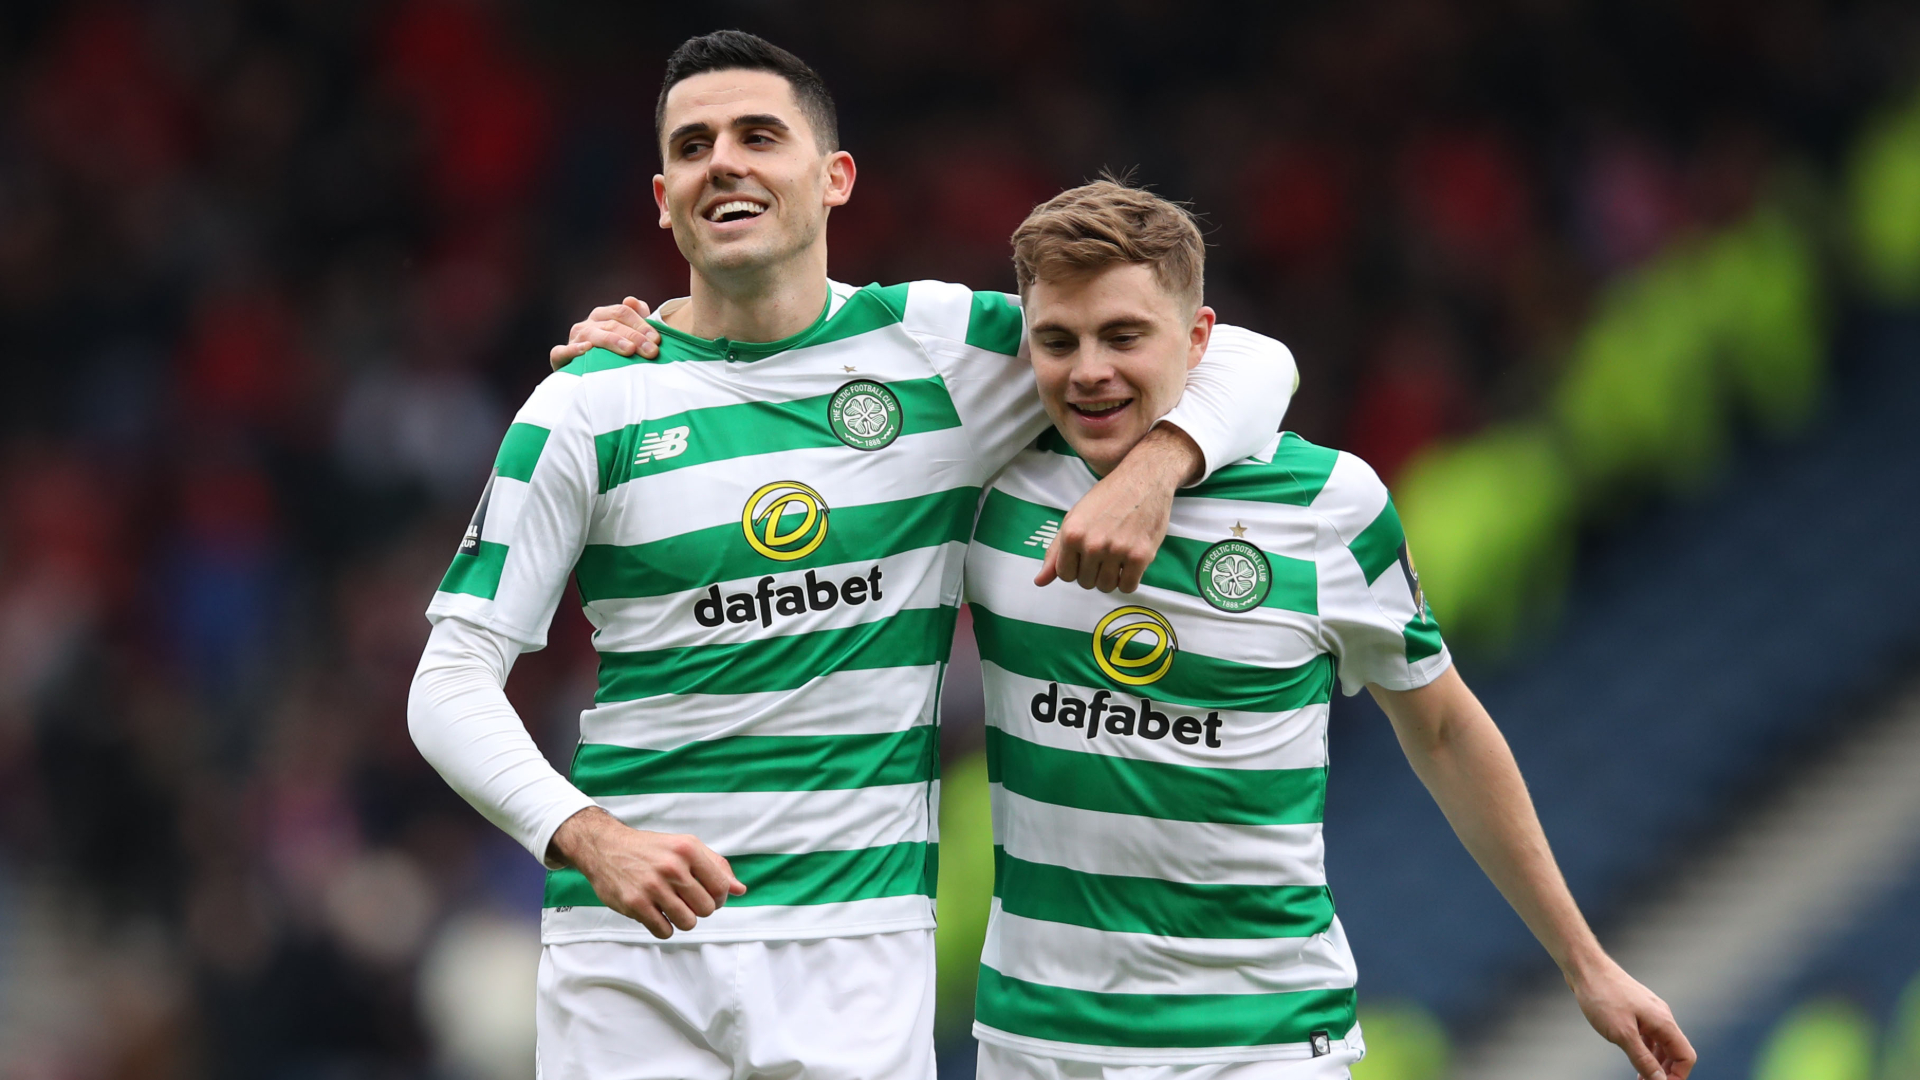 Hearts vs Celtic Betting Tips: Latest odds, team news, preview and predictions